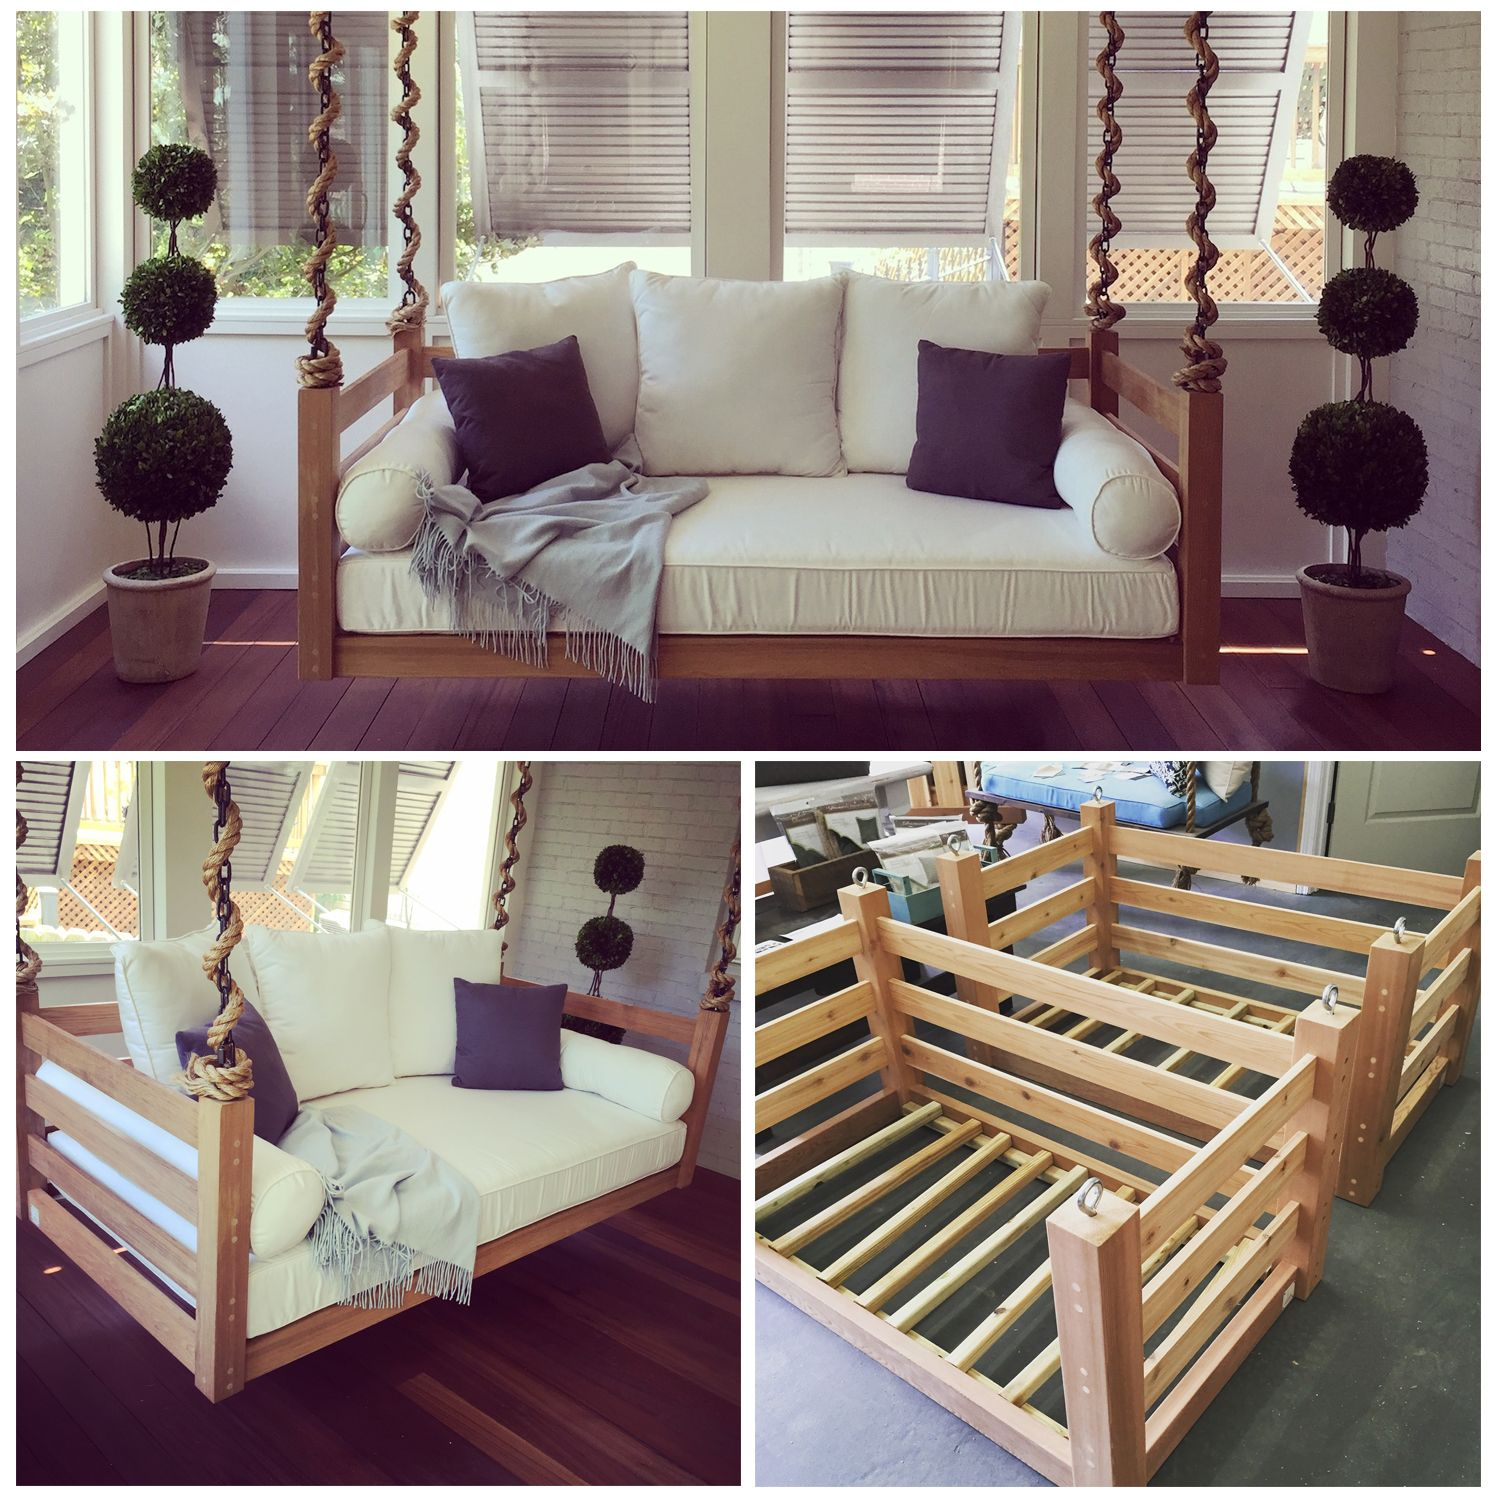 Lowcountry Swing Beds Bedswings Porch Beds Barn